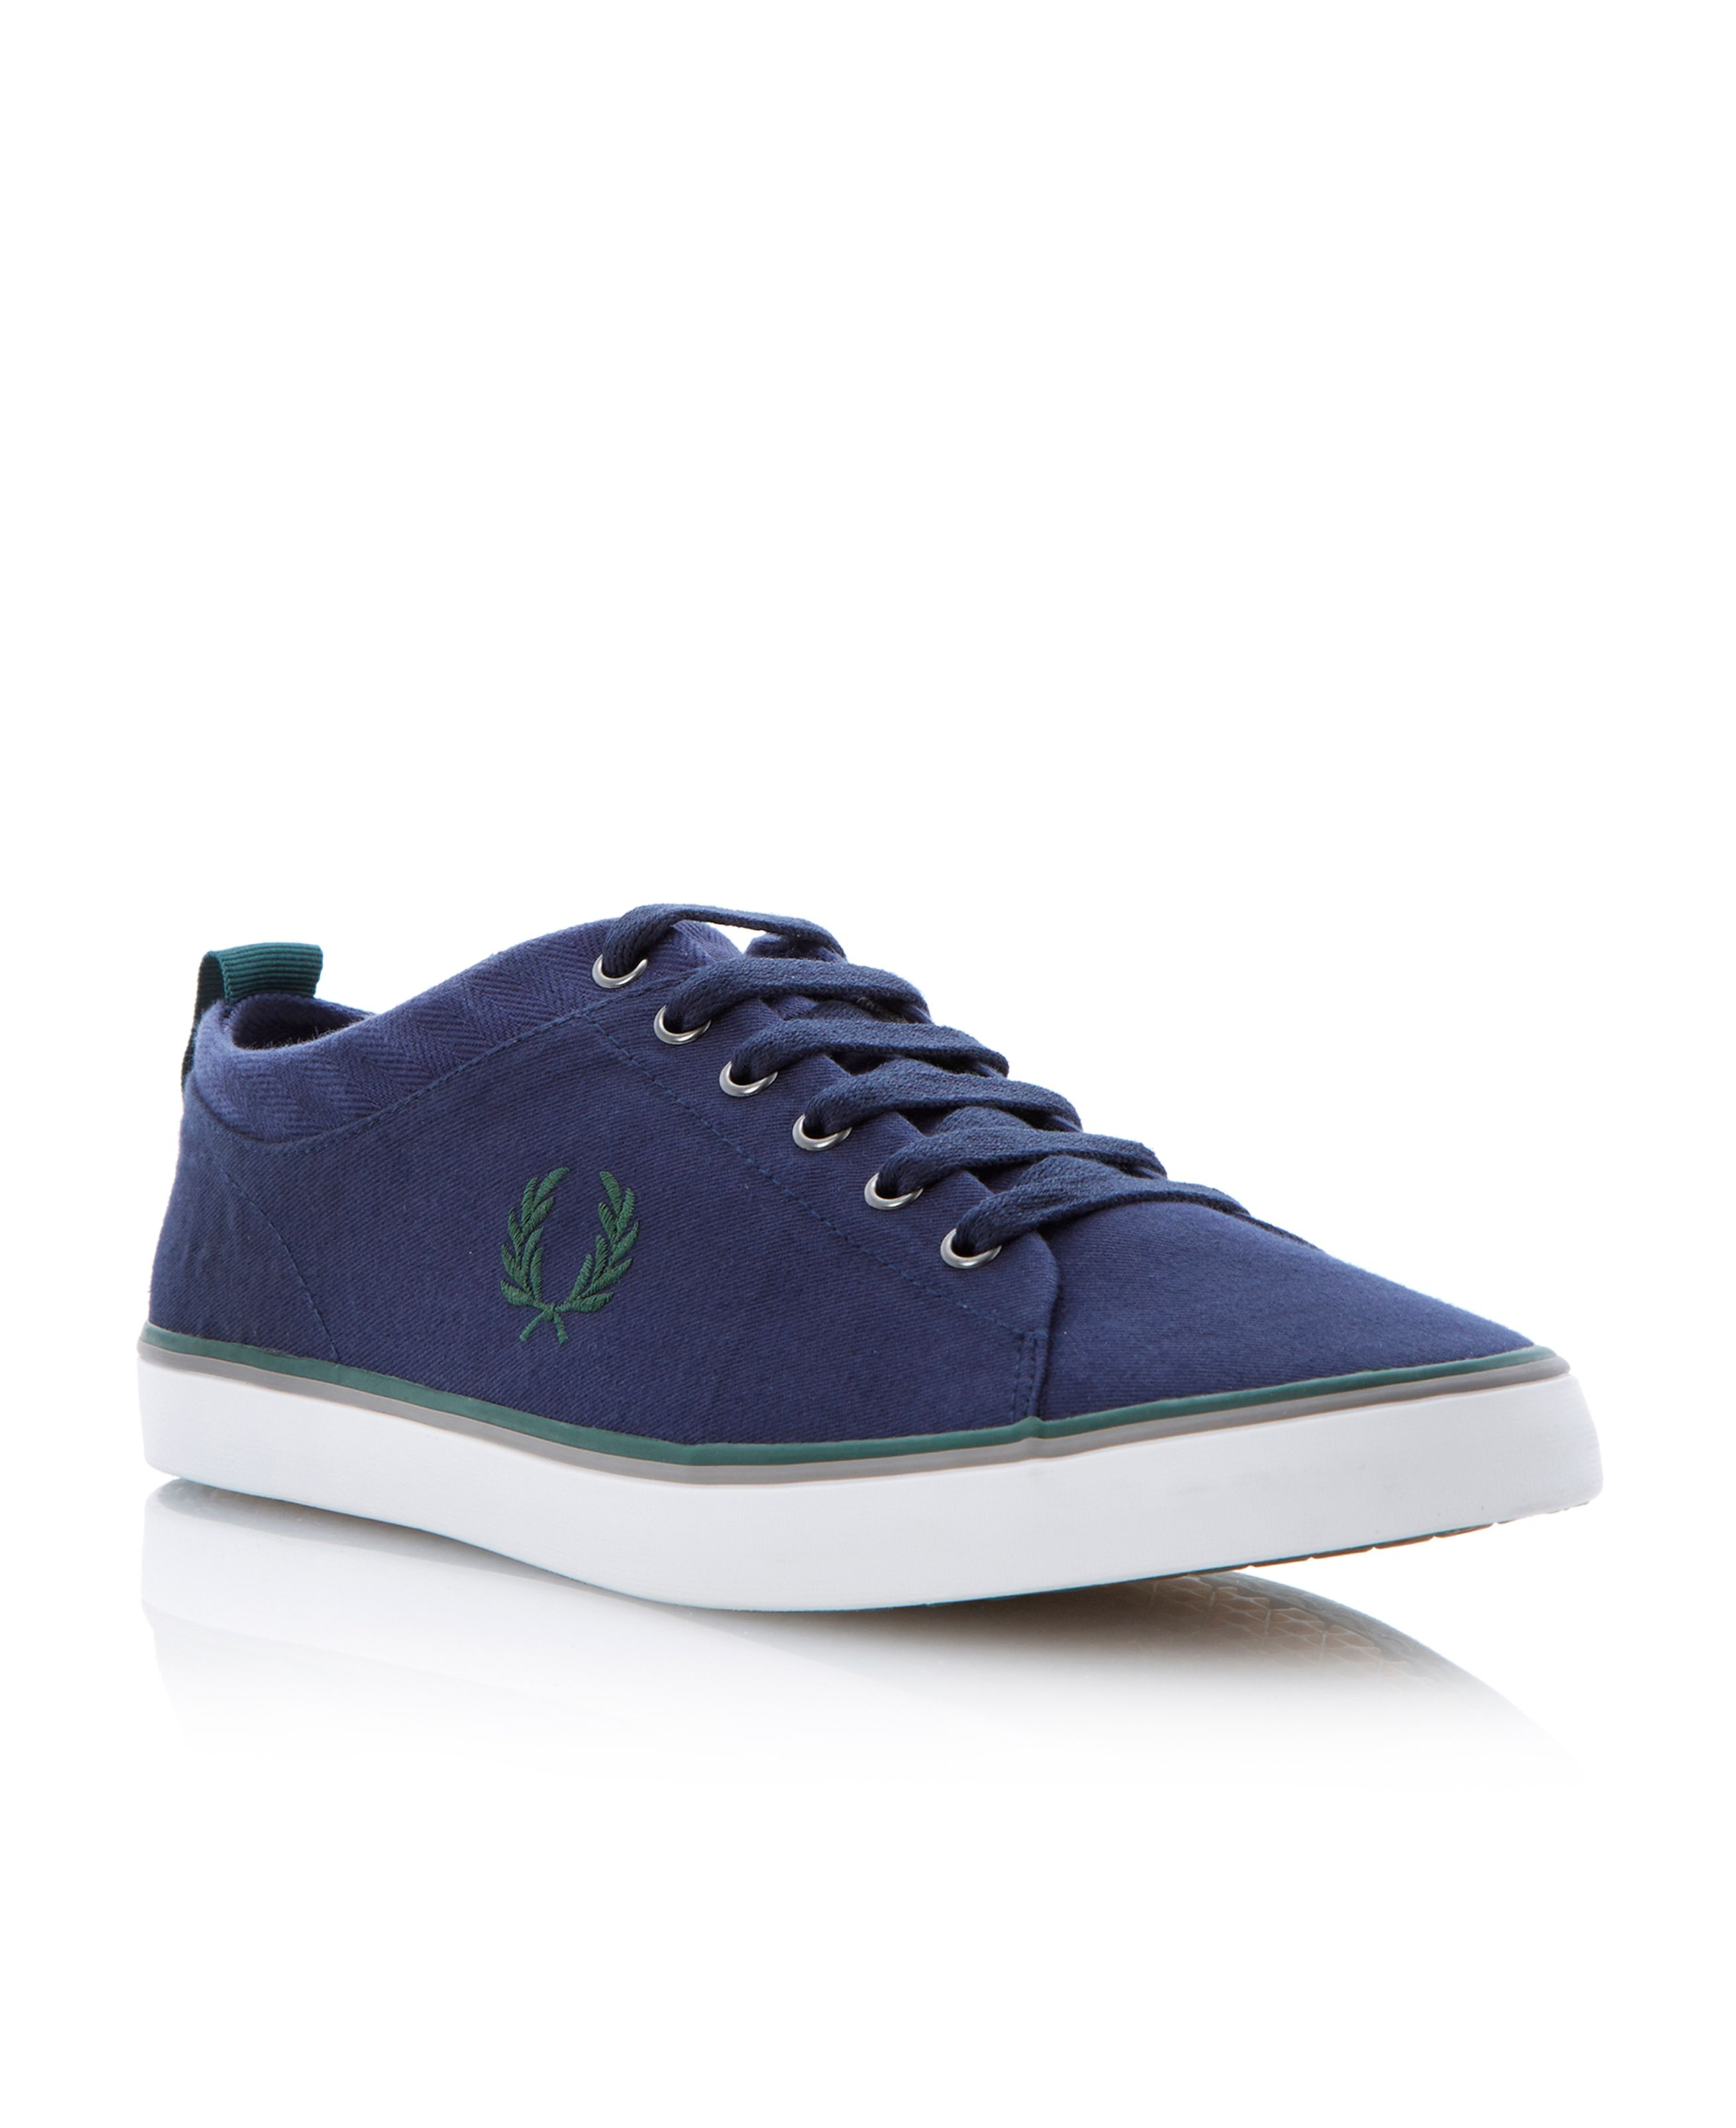 Hallam twill lace up authentic logo trainers